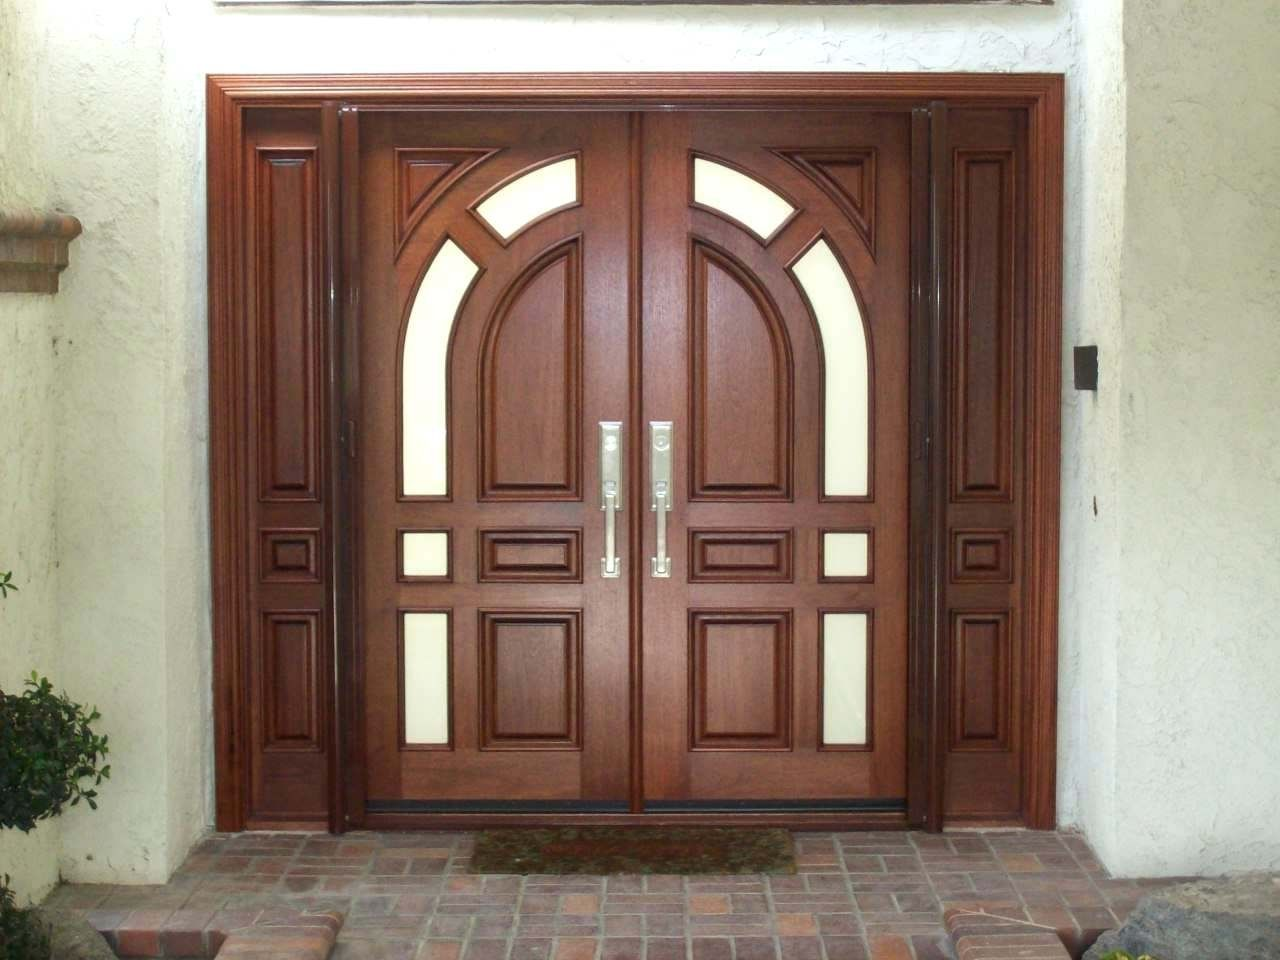 Mobile Home Exterior Doors 32 X 76 Main Door Design Wooden Main Door Double Door Design